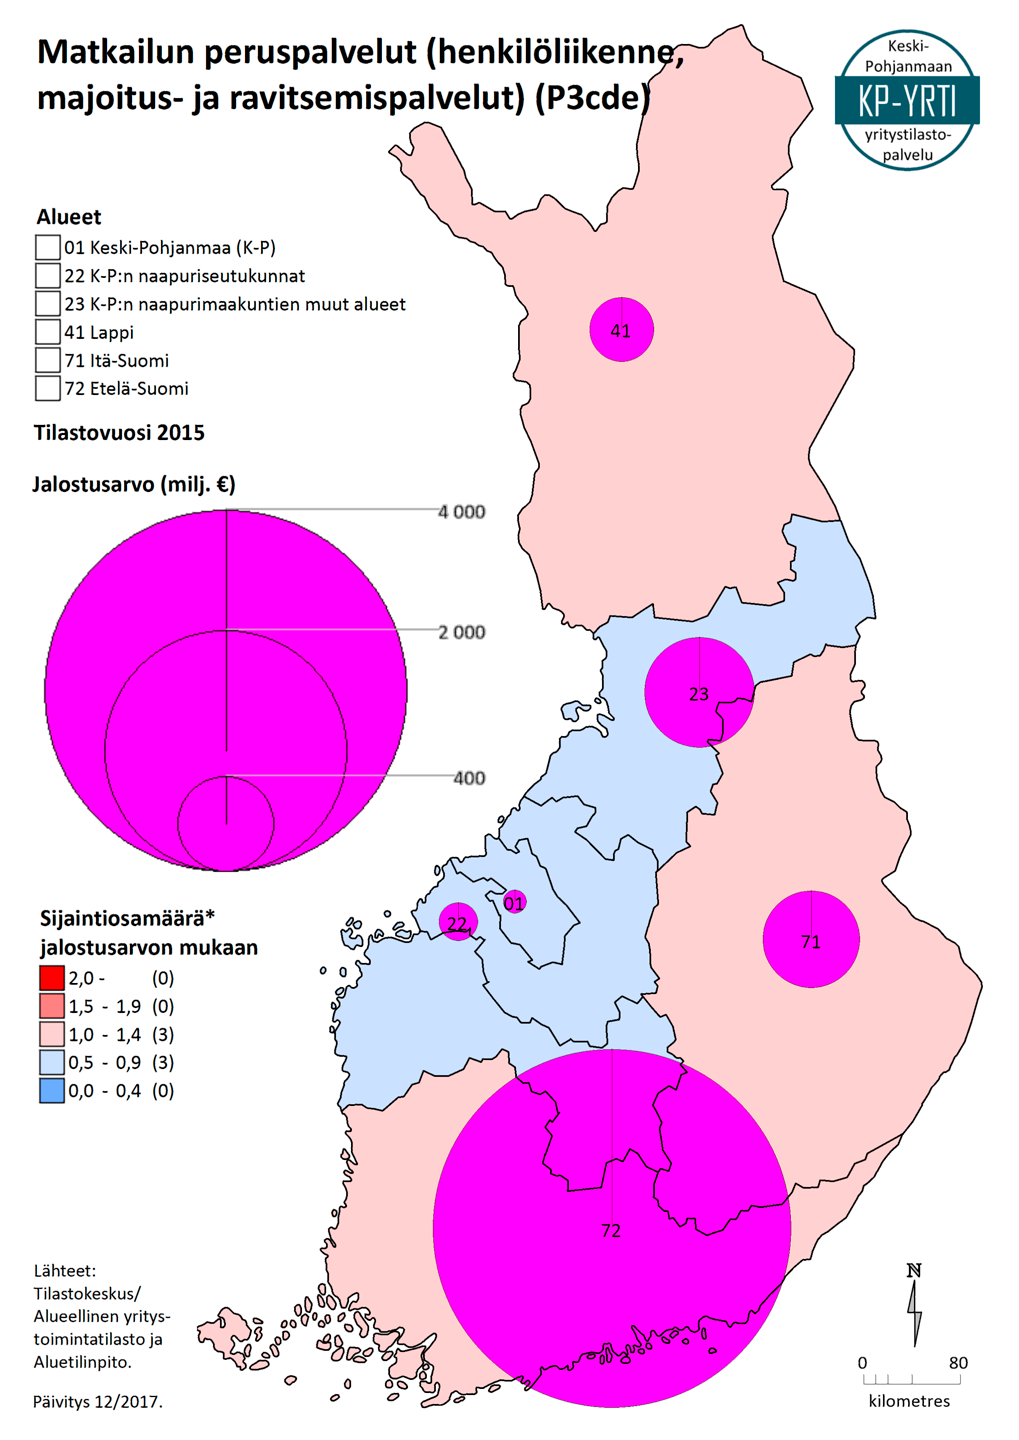 73-P3cde-map-ja-2015-p201712.png